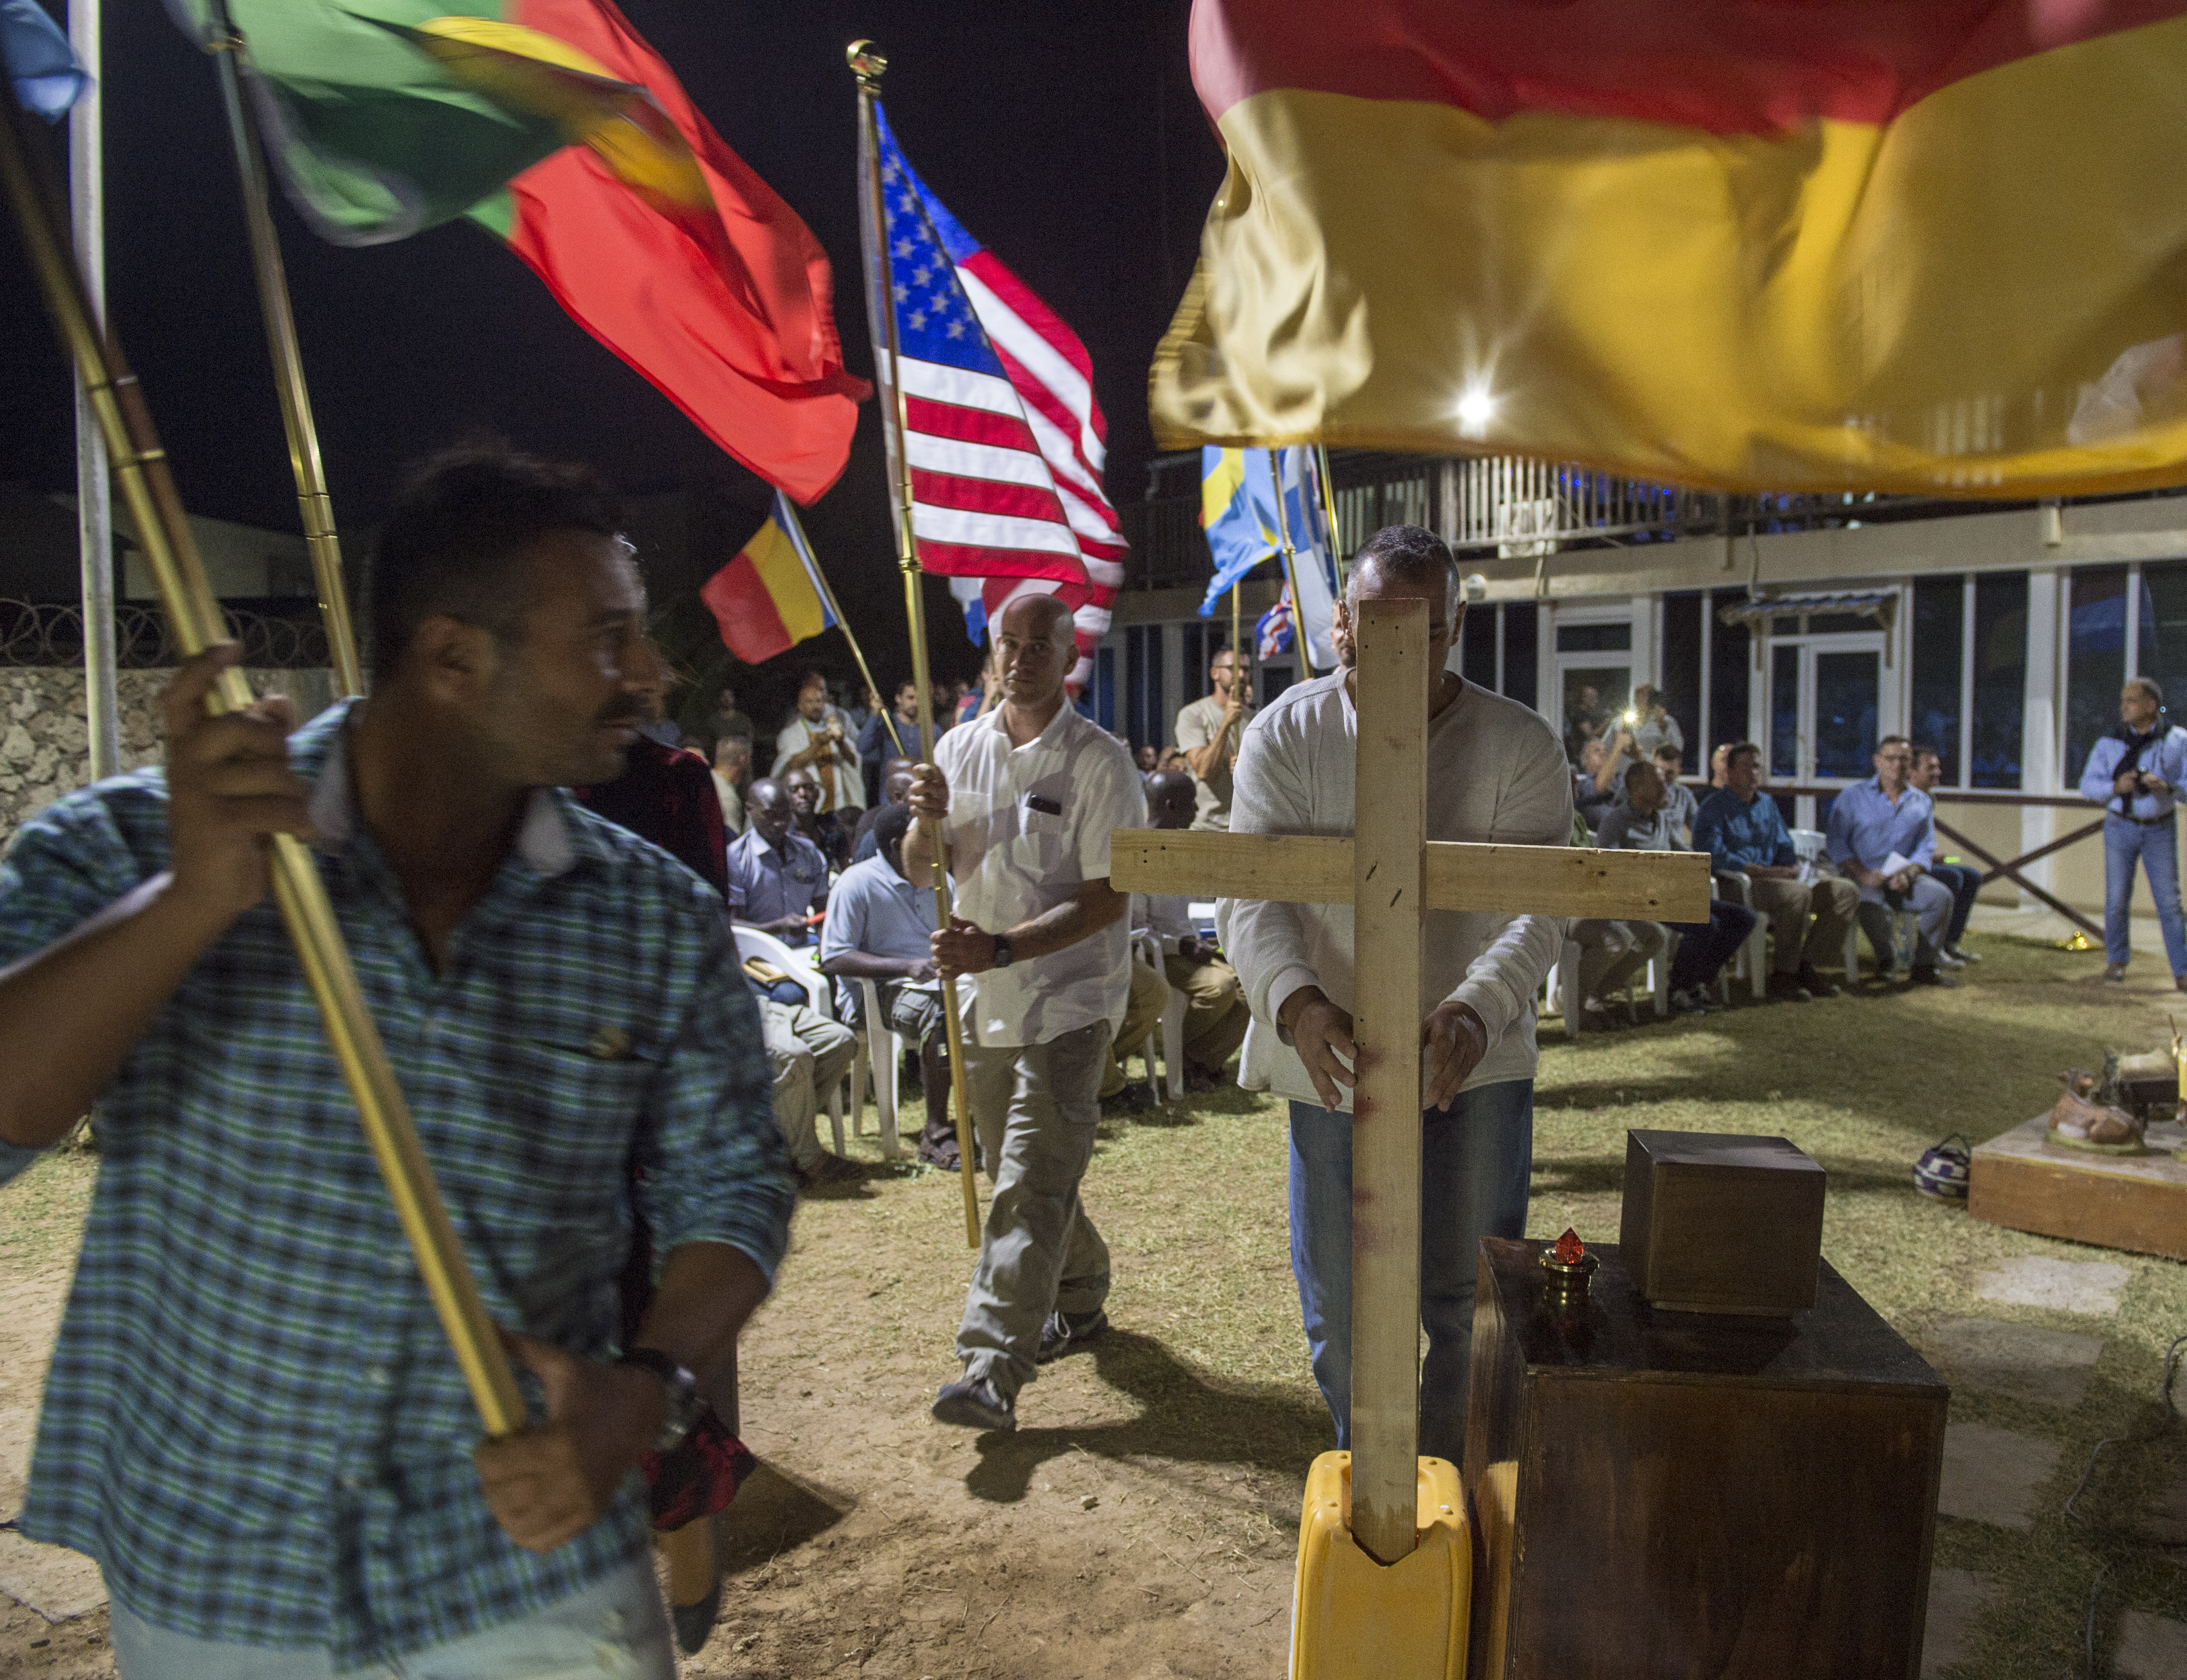 U.S. service members assigned to Combined Joint Task Force - Horn of Africa, along side service members from partner nations, take part in a Christmas Eve service in Mogadishu, Somalia, Dec. 24, 2017.  Service members are taking time to connect with each other and with family members back home as they head into the new year, continuing their dedication to protecting the U.S. and strengthening relationships with partnered nations. (U.S. Air Force photo by Staff Sgt. Timothy Moore)